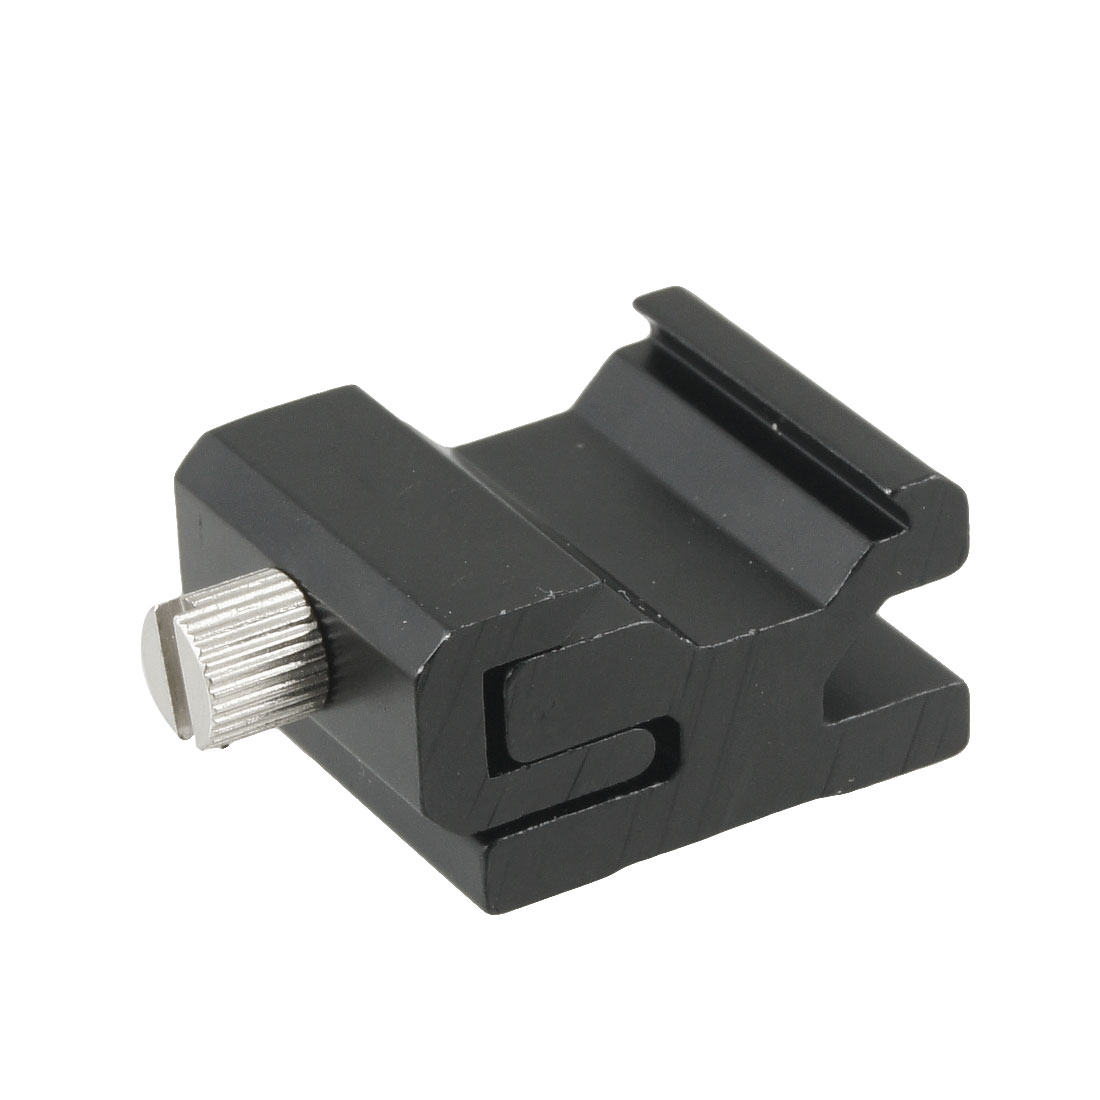 "Photo Flash Adapter Hot Shoe Mount With 1/4"" Bracket Thread Bracket"